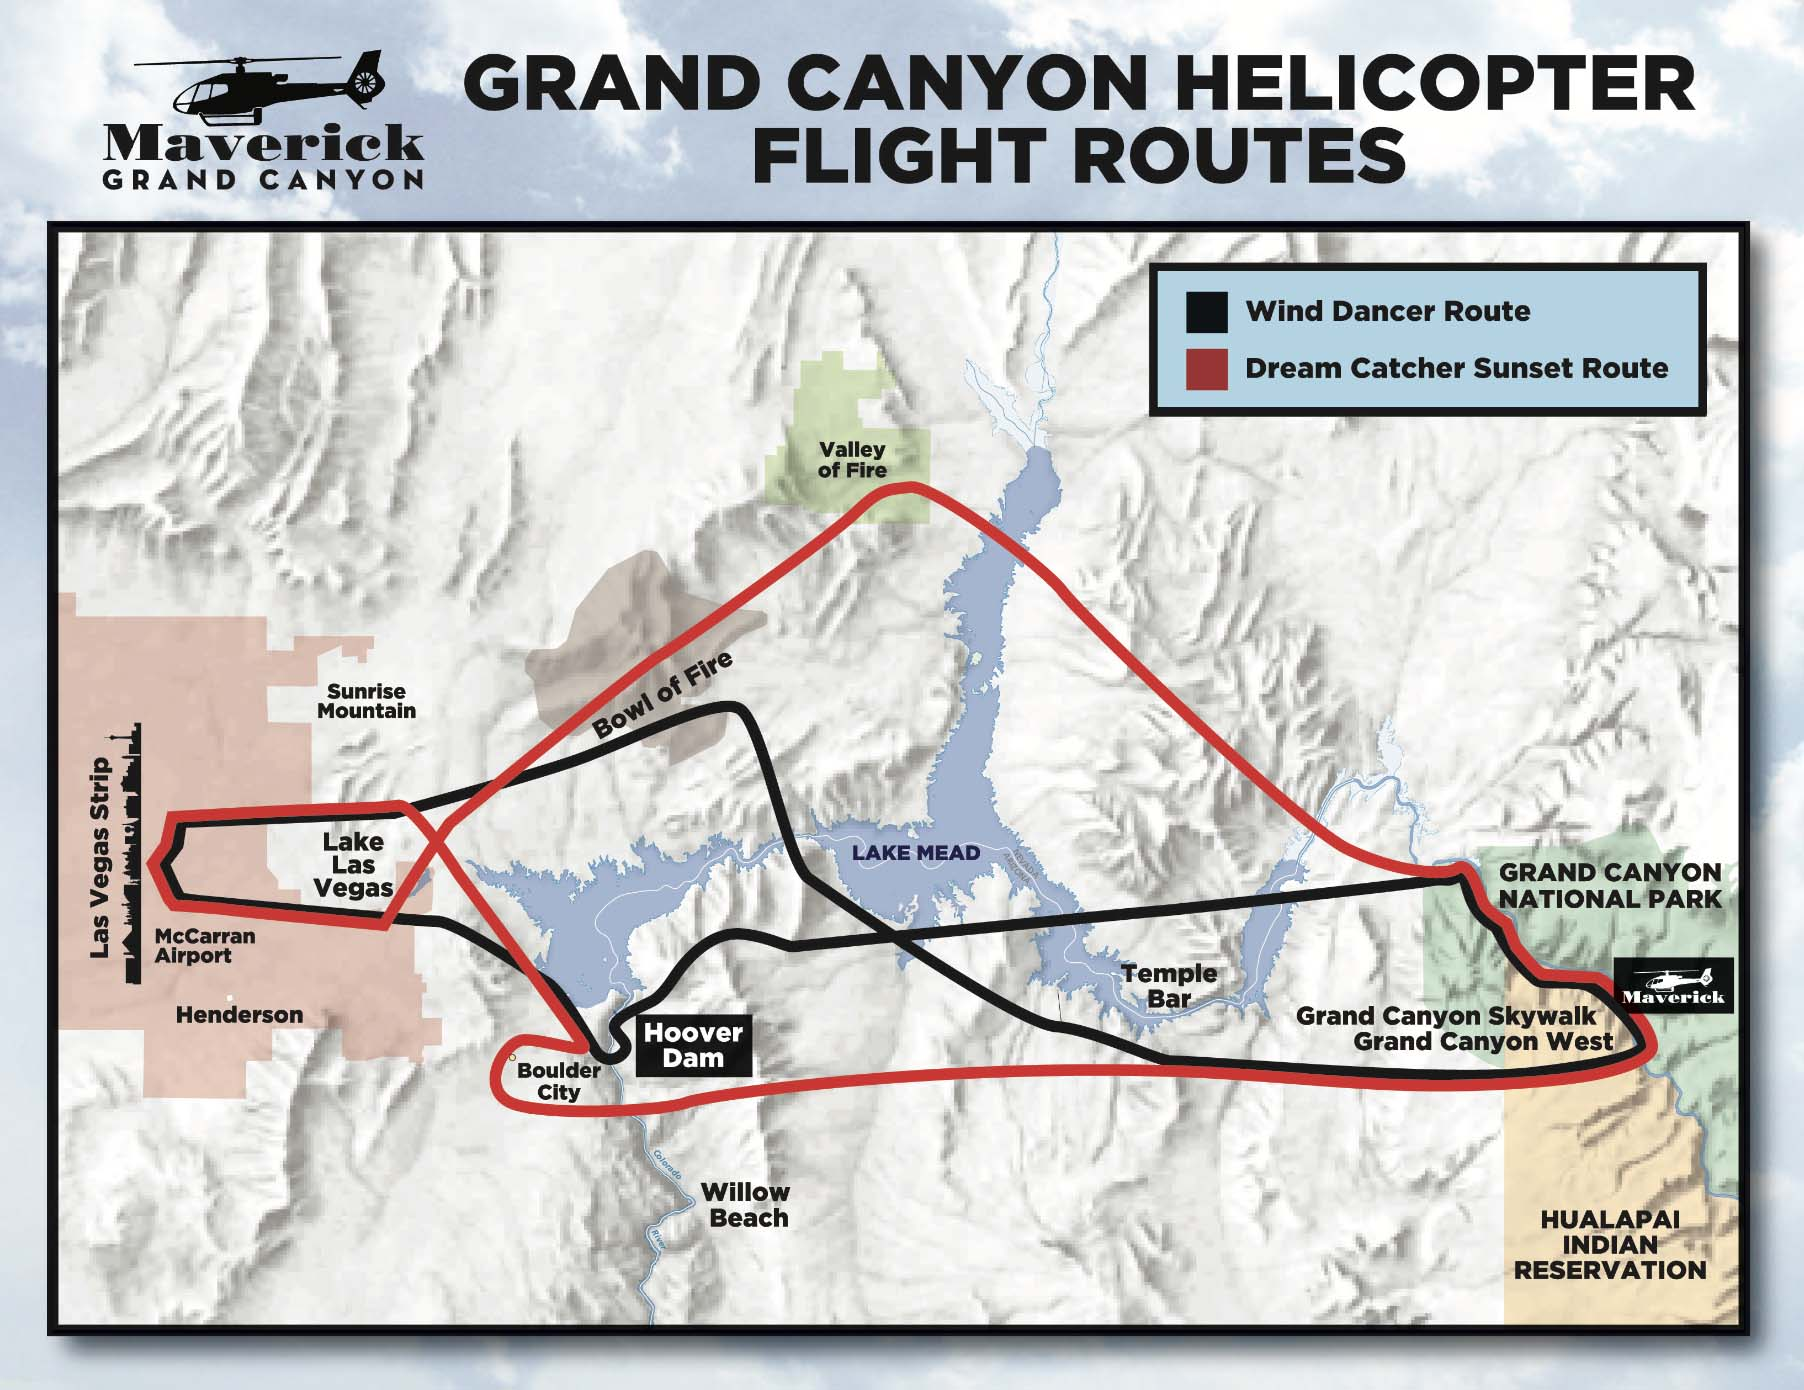 mapa da rota do voo sobre o Grand Canyon